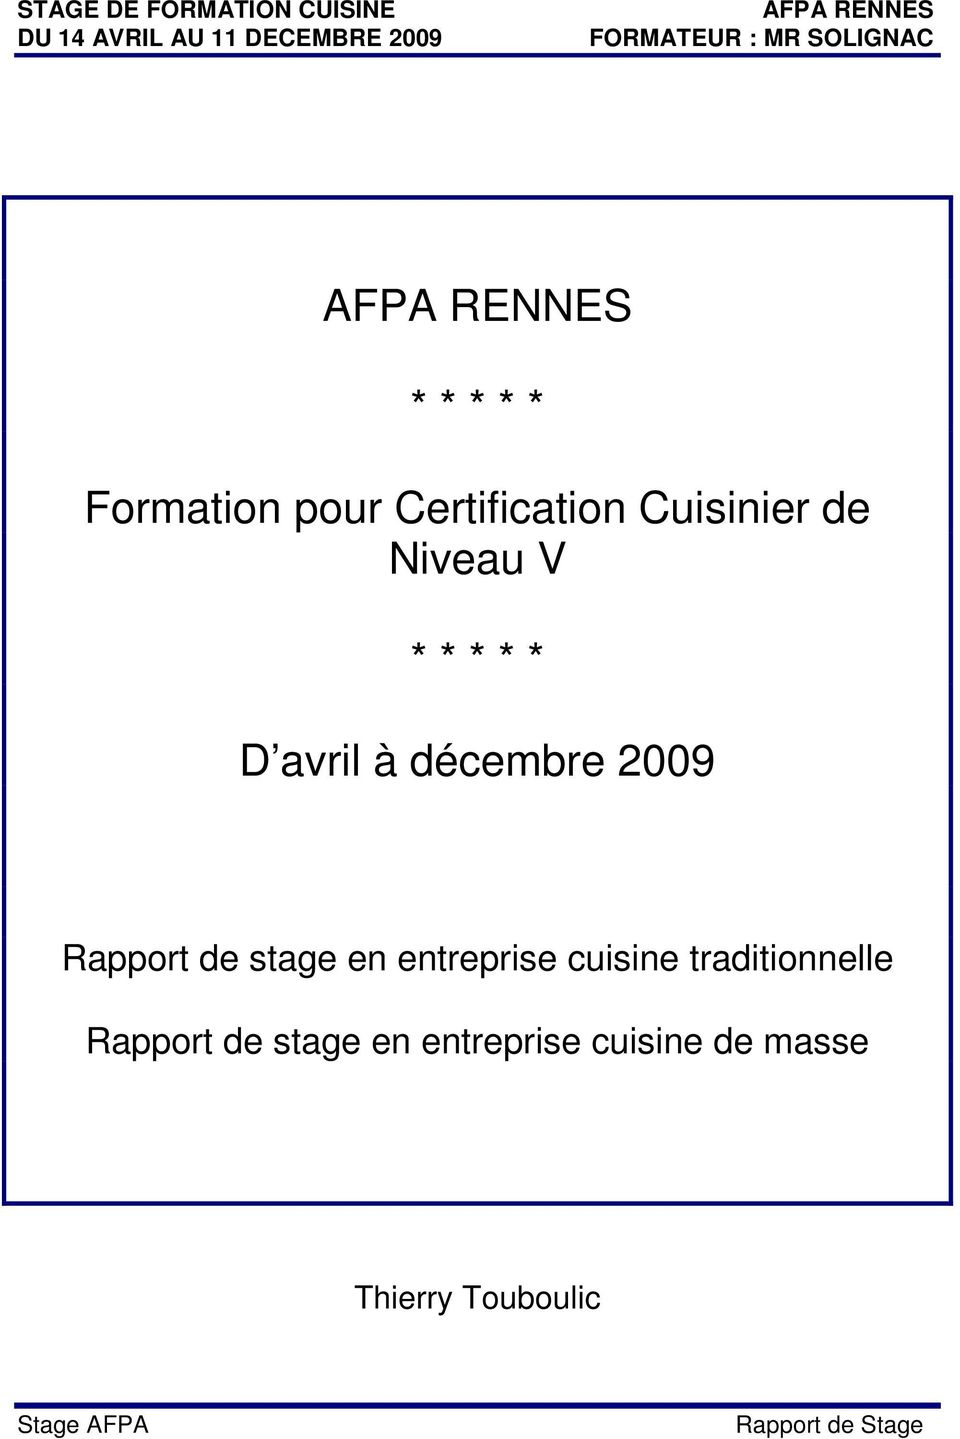 Afpa rennes formation pour certification for Afpa cuisine formation